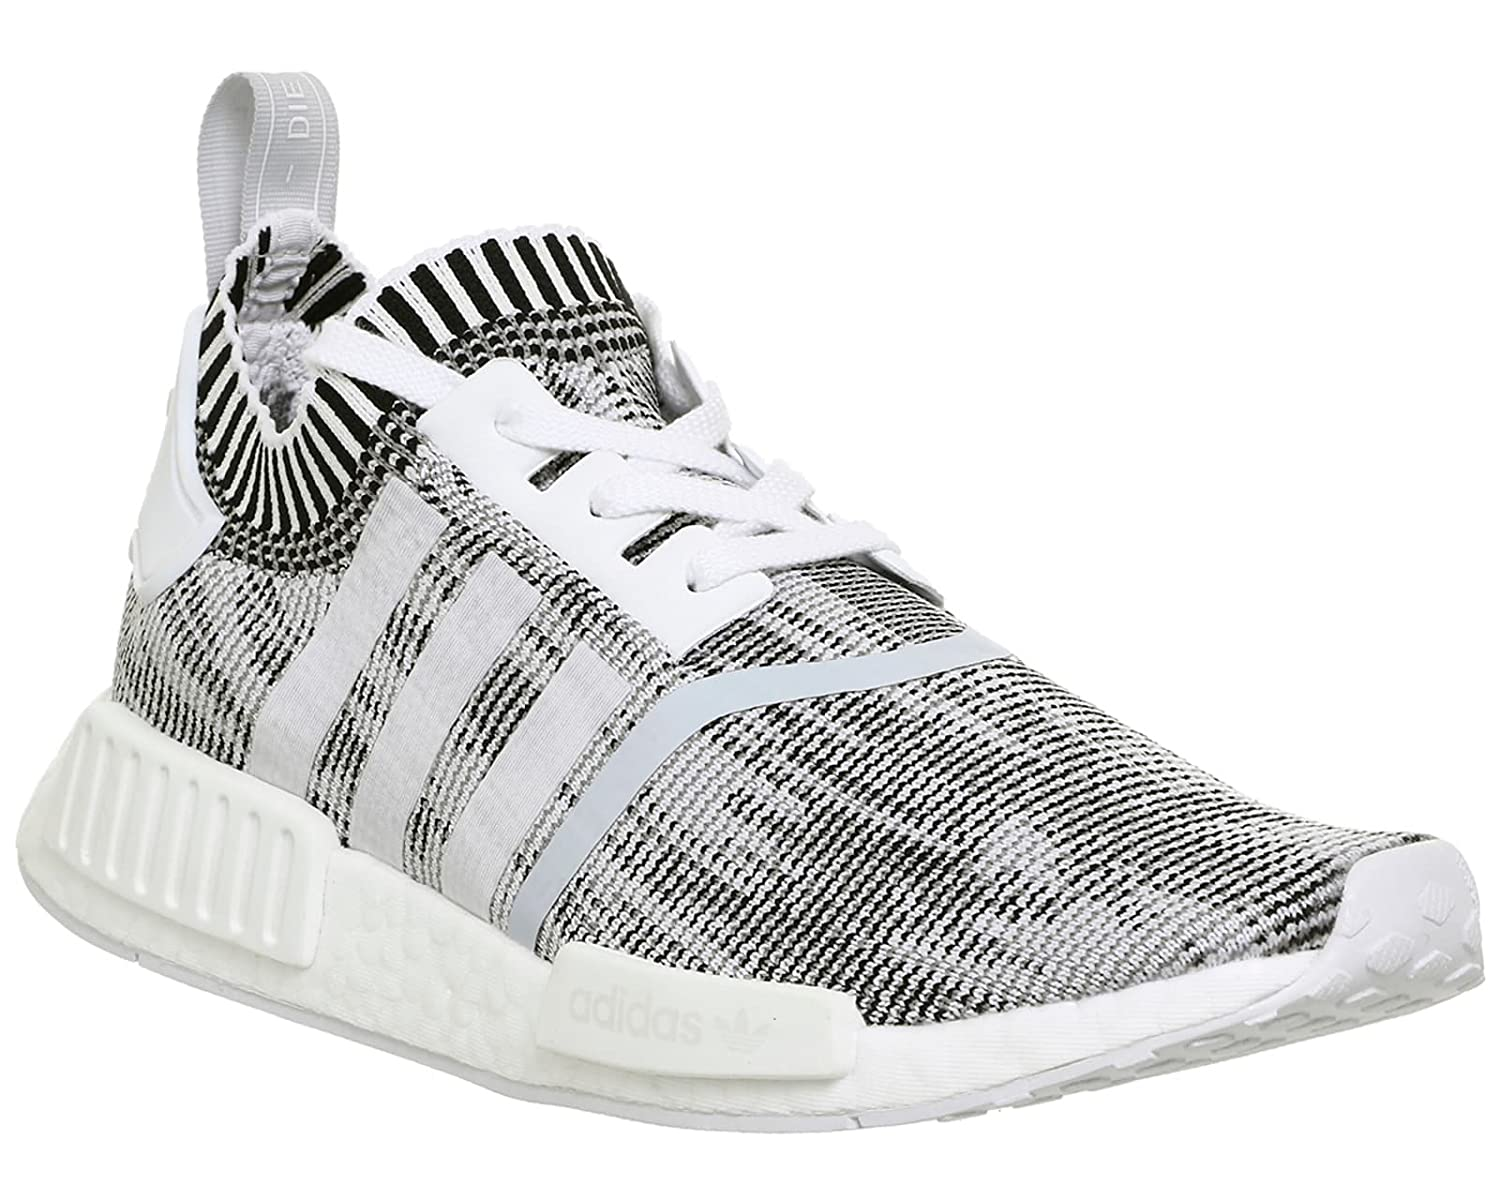 1a26c6c56 adidas NMD R1 Prime Knit White White Black - 7 UK  Amazon.co.uk  Shoes    Bags